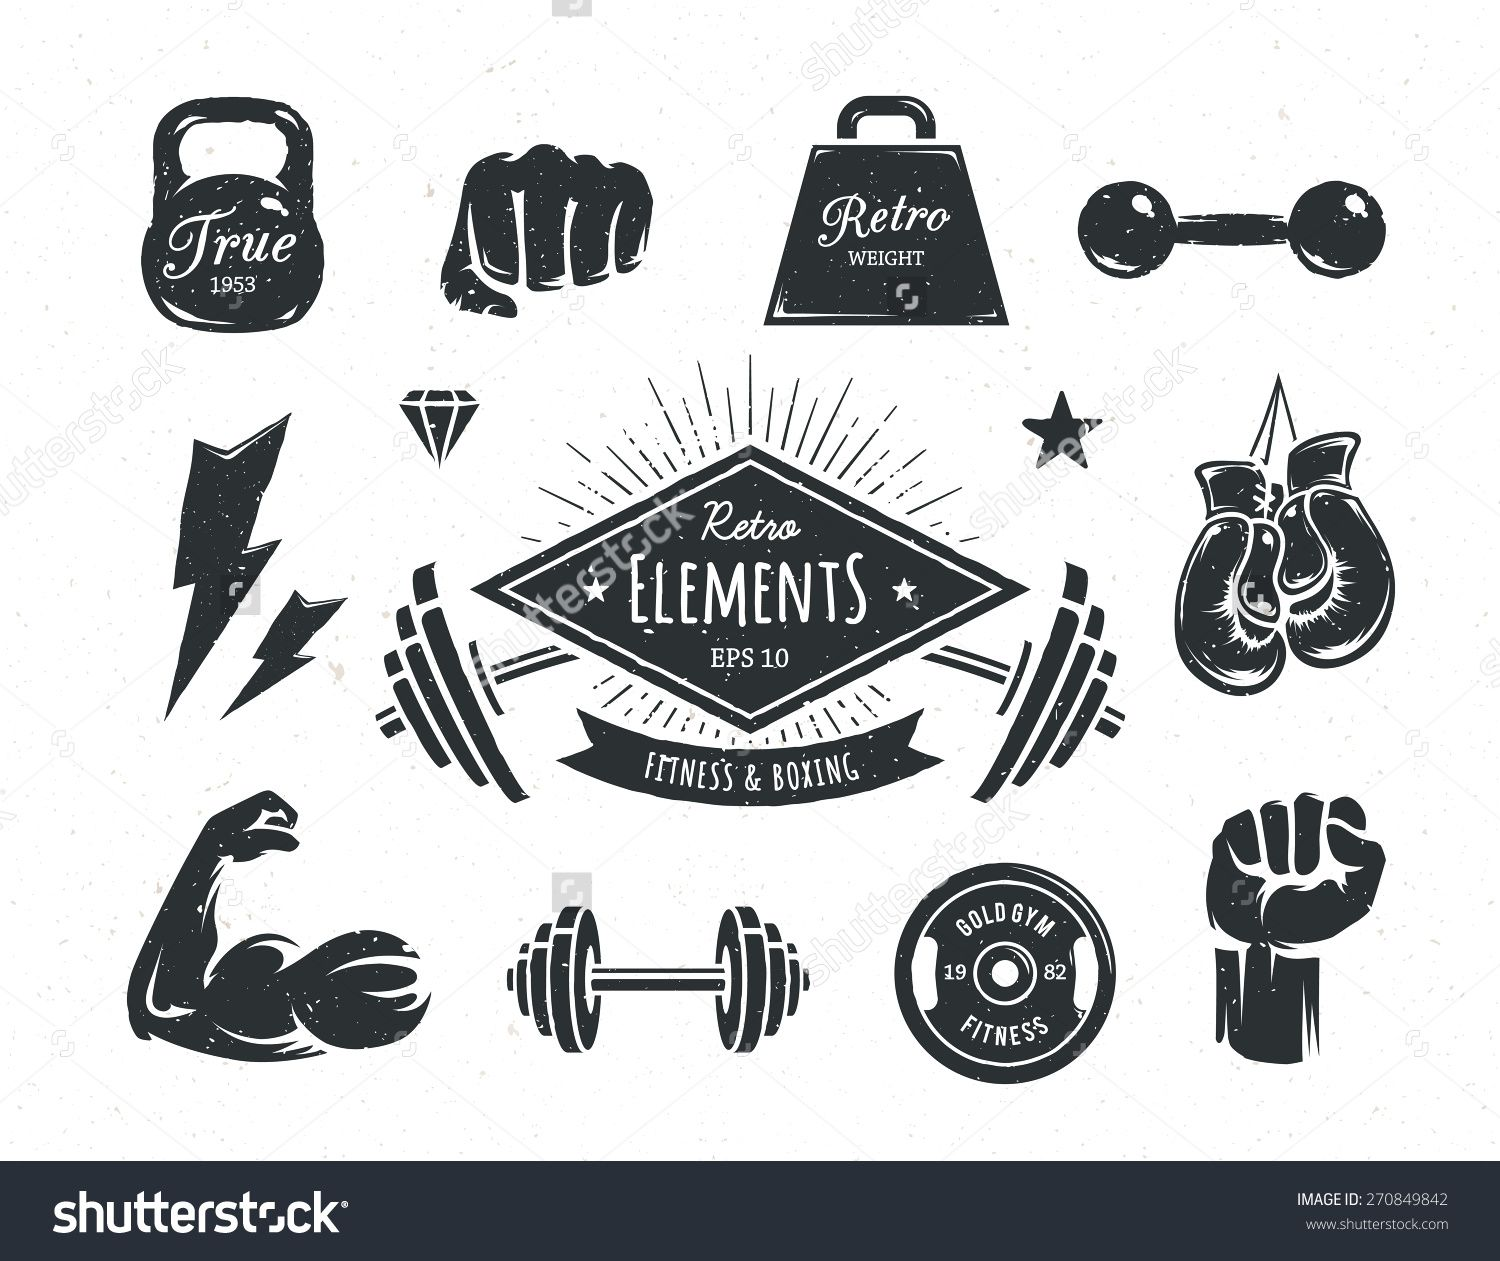 routine and fitness logo - Google Search